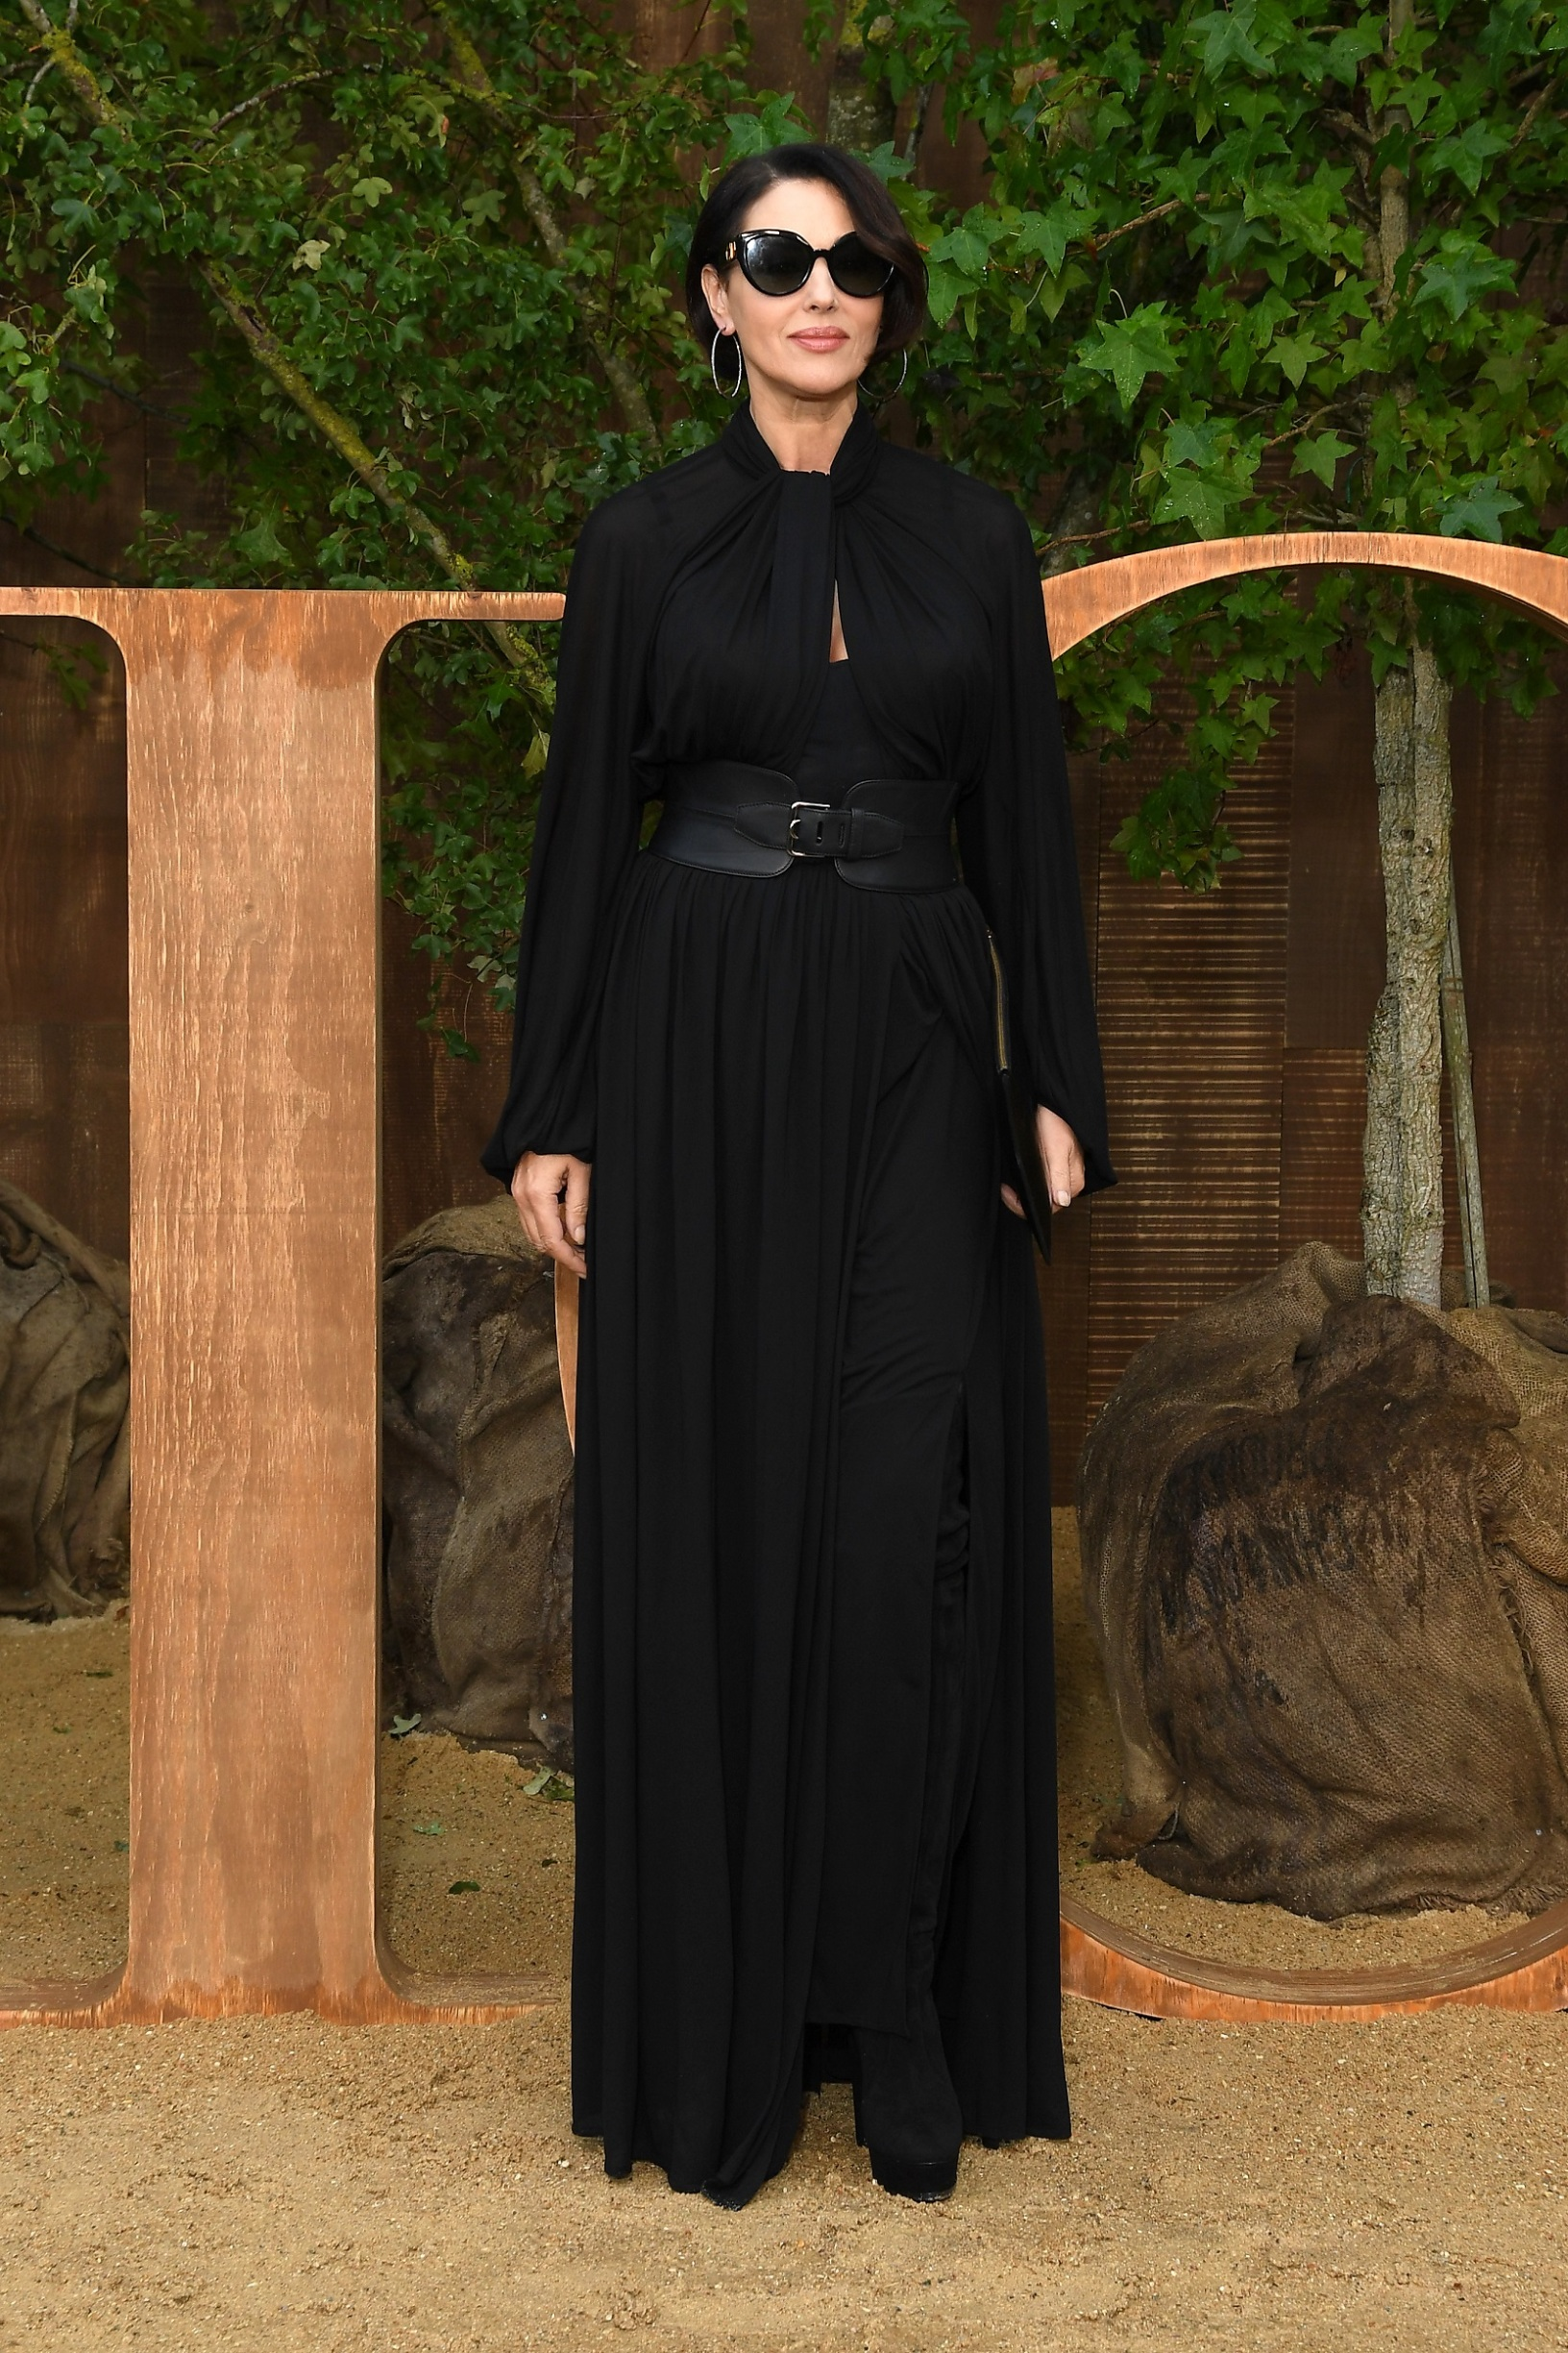 PARIS, FRANCE - SEPTEMBER 24: Monica Bellucci attends the Christian Dior Womenswear Spring/Summer 2020 show as part of Paris Fashion Week on September 24, 2019 in Paris, France. (Photo by Pascal Le Segretain/Getty Images)